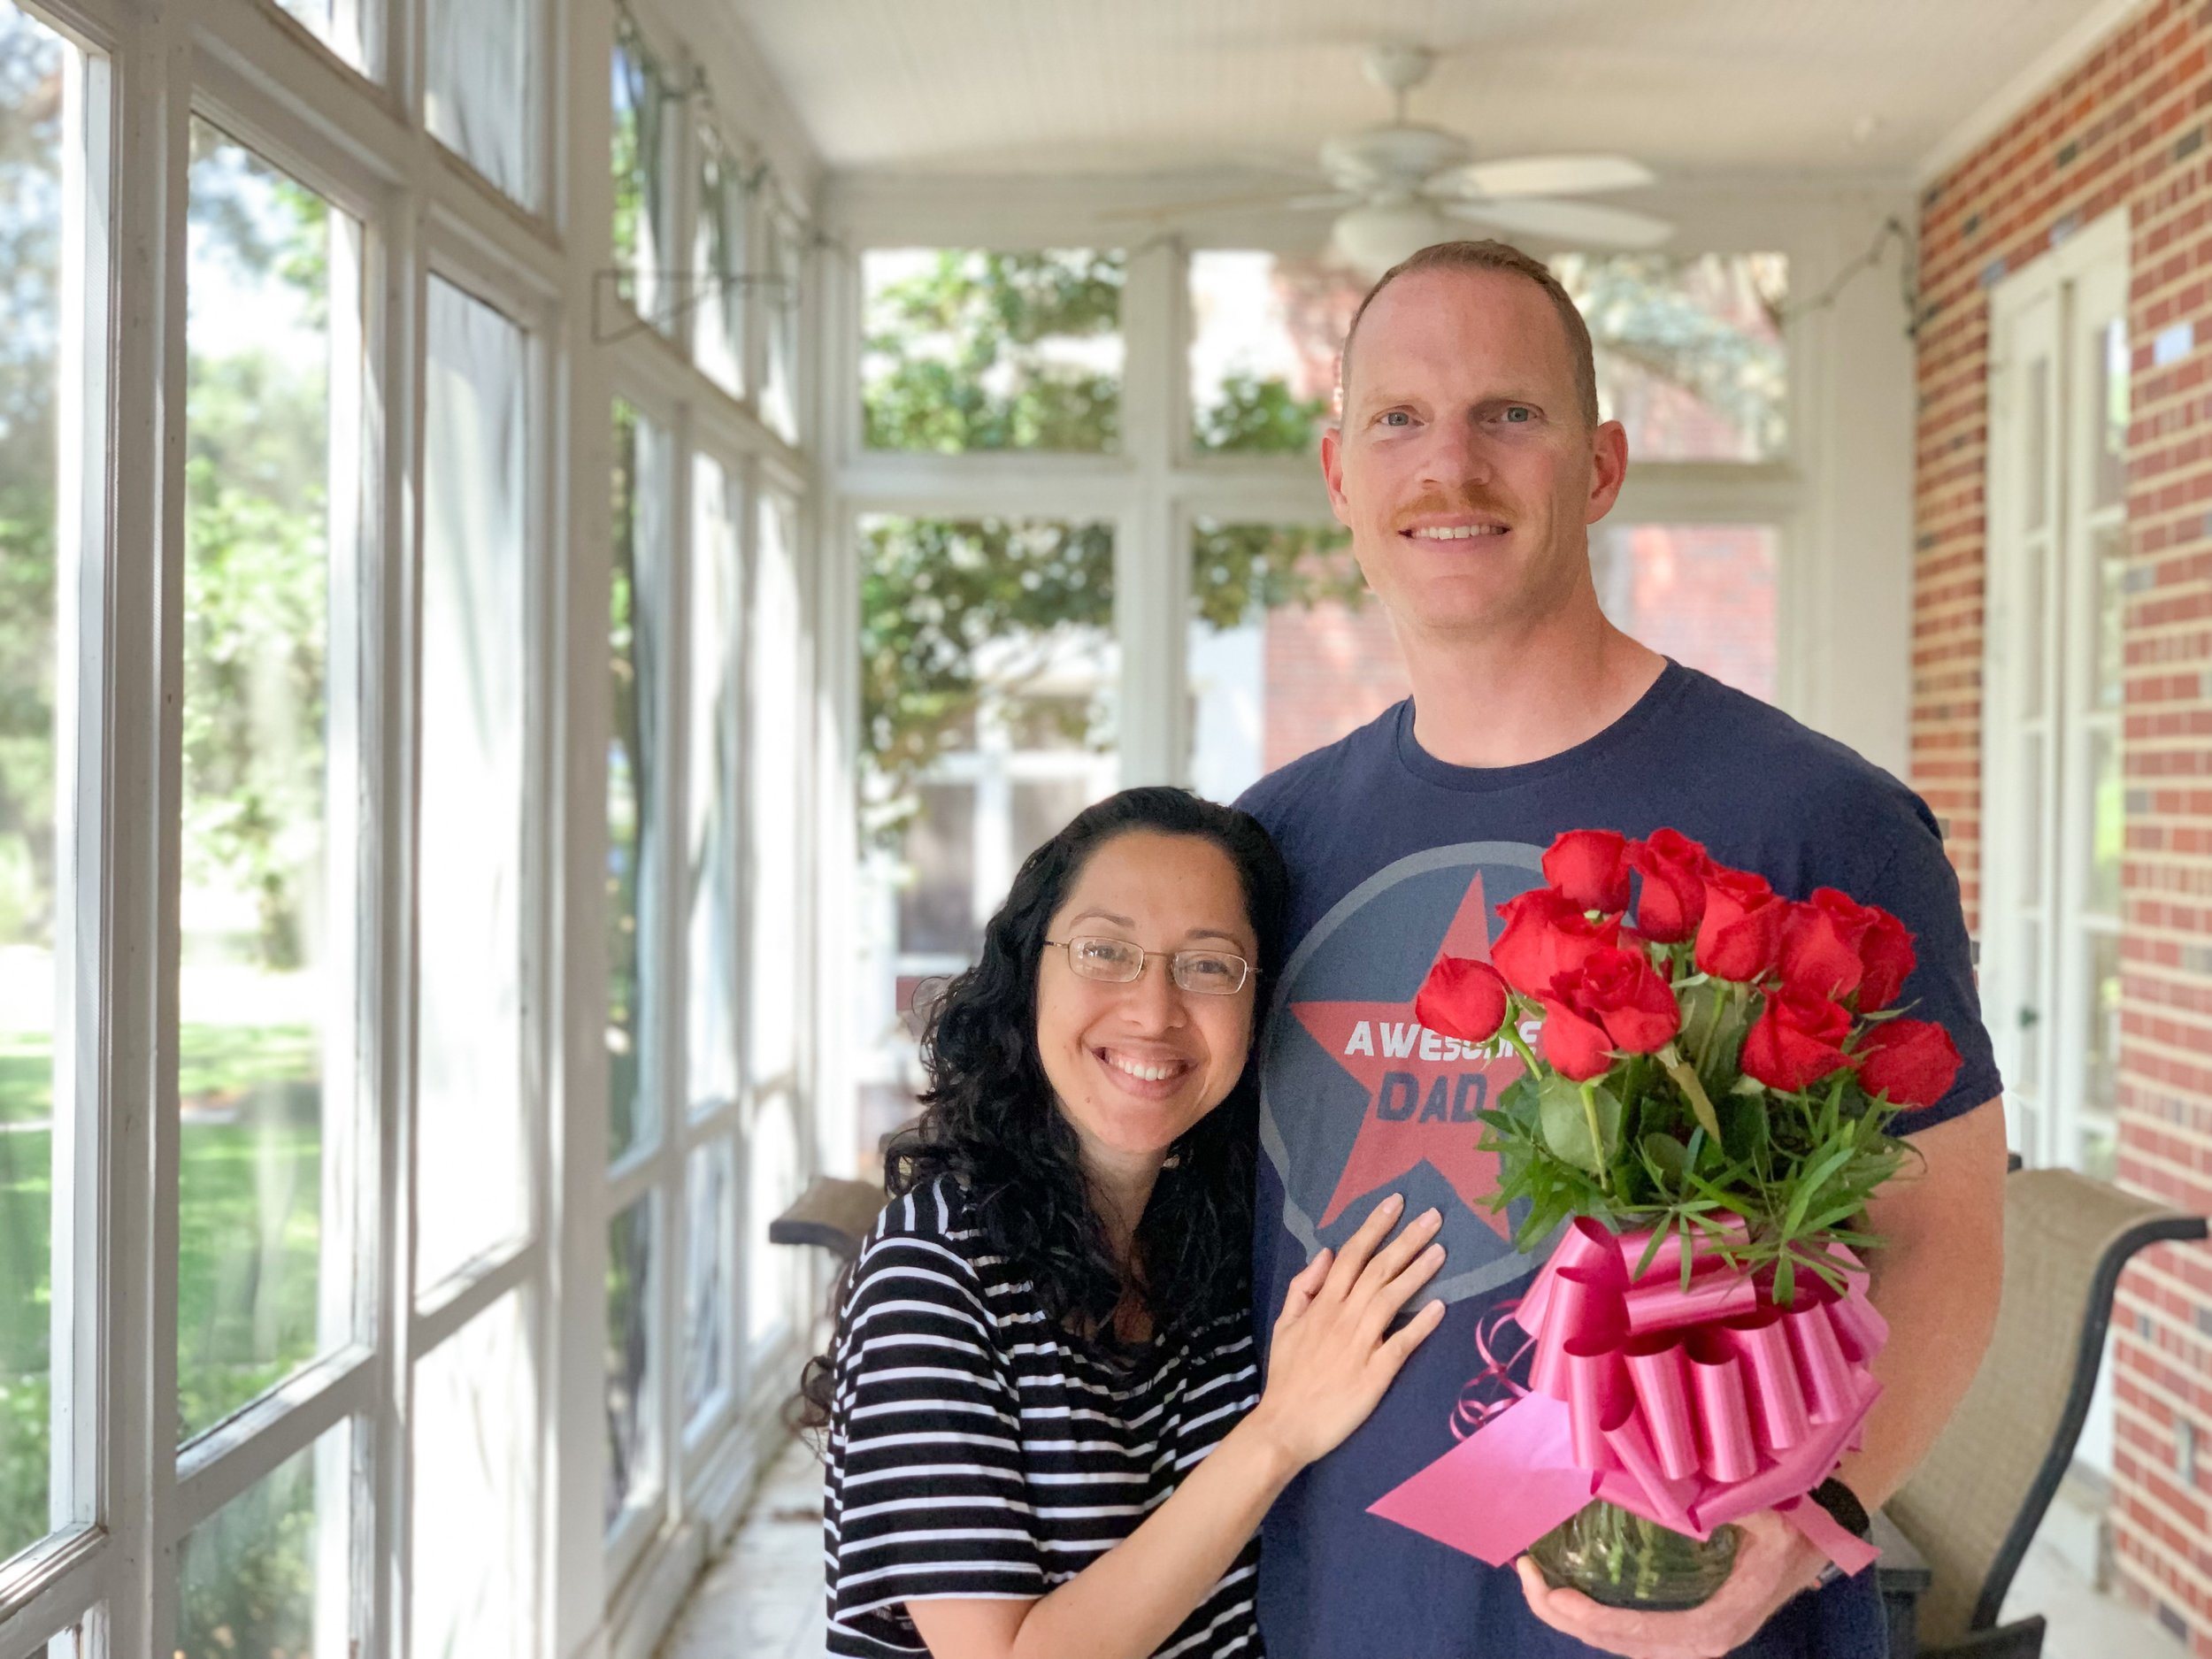 17 roses for 17 wonderful years of marriage